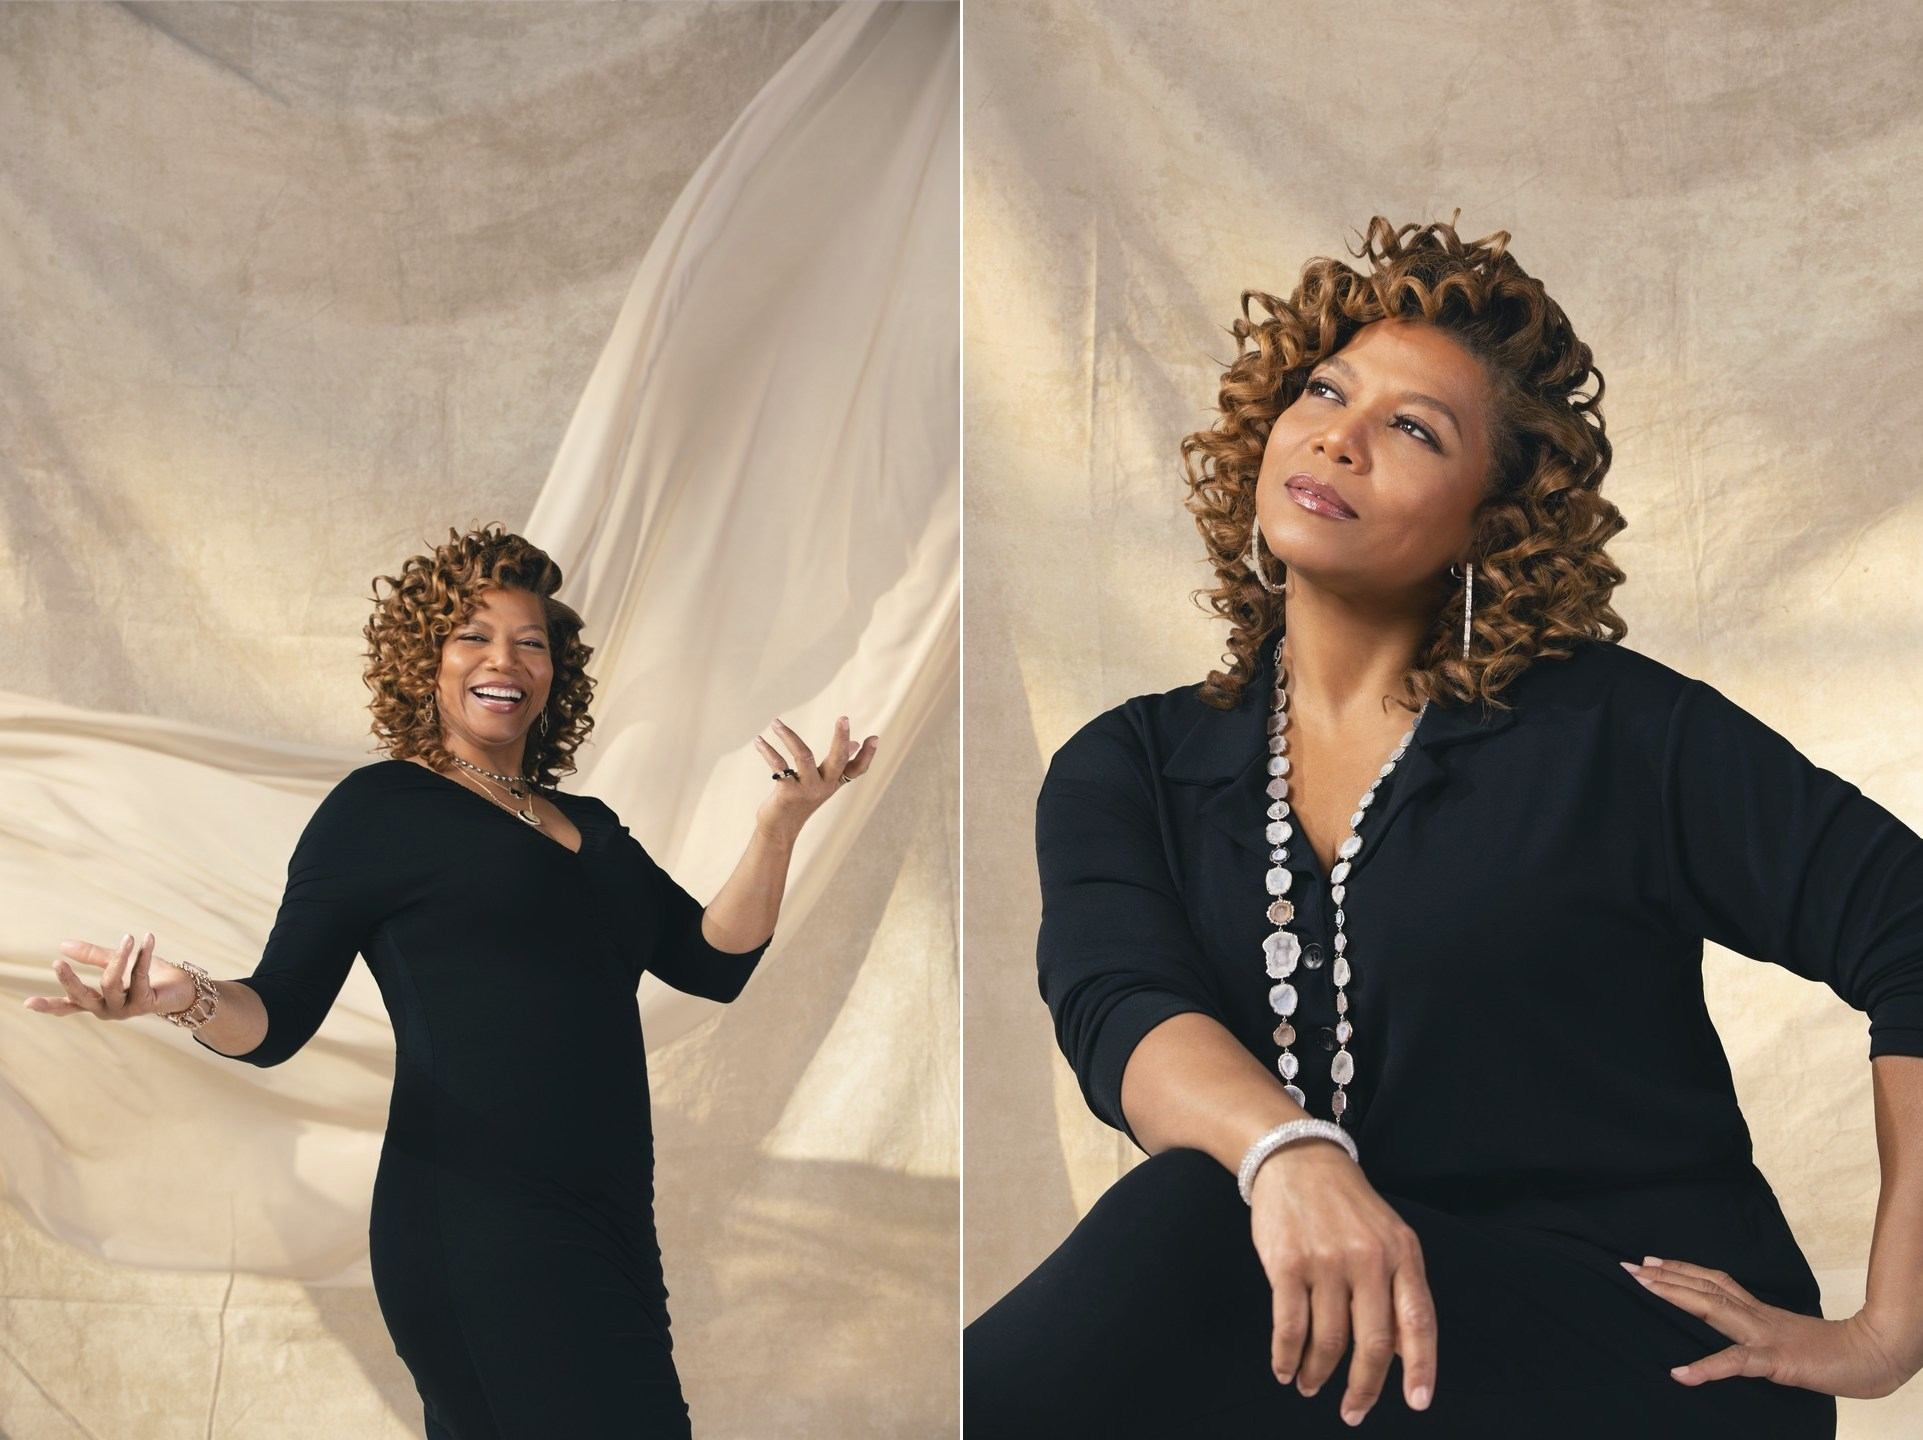 The Tyler Twins | Queen Latifah for People